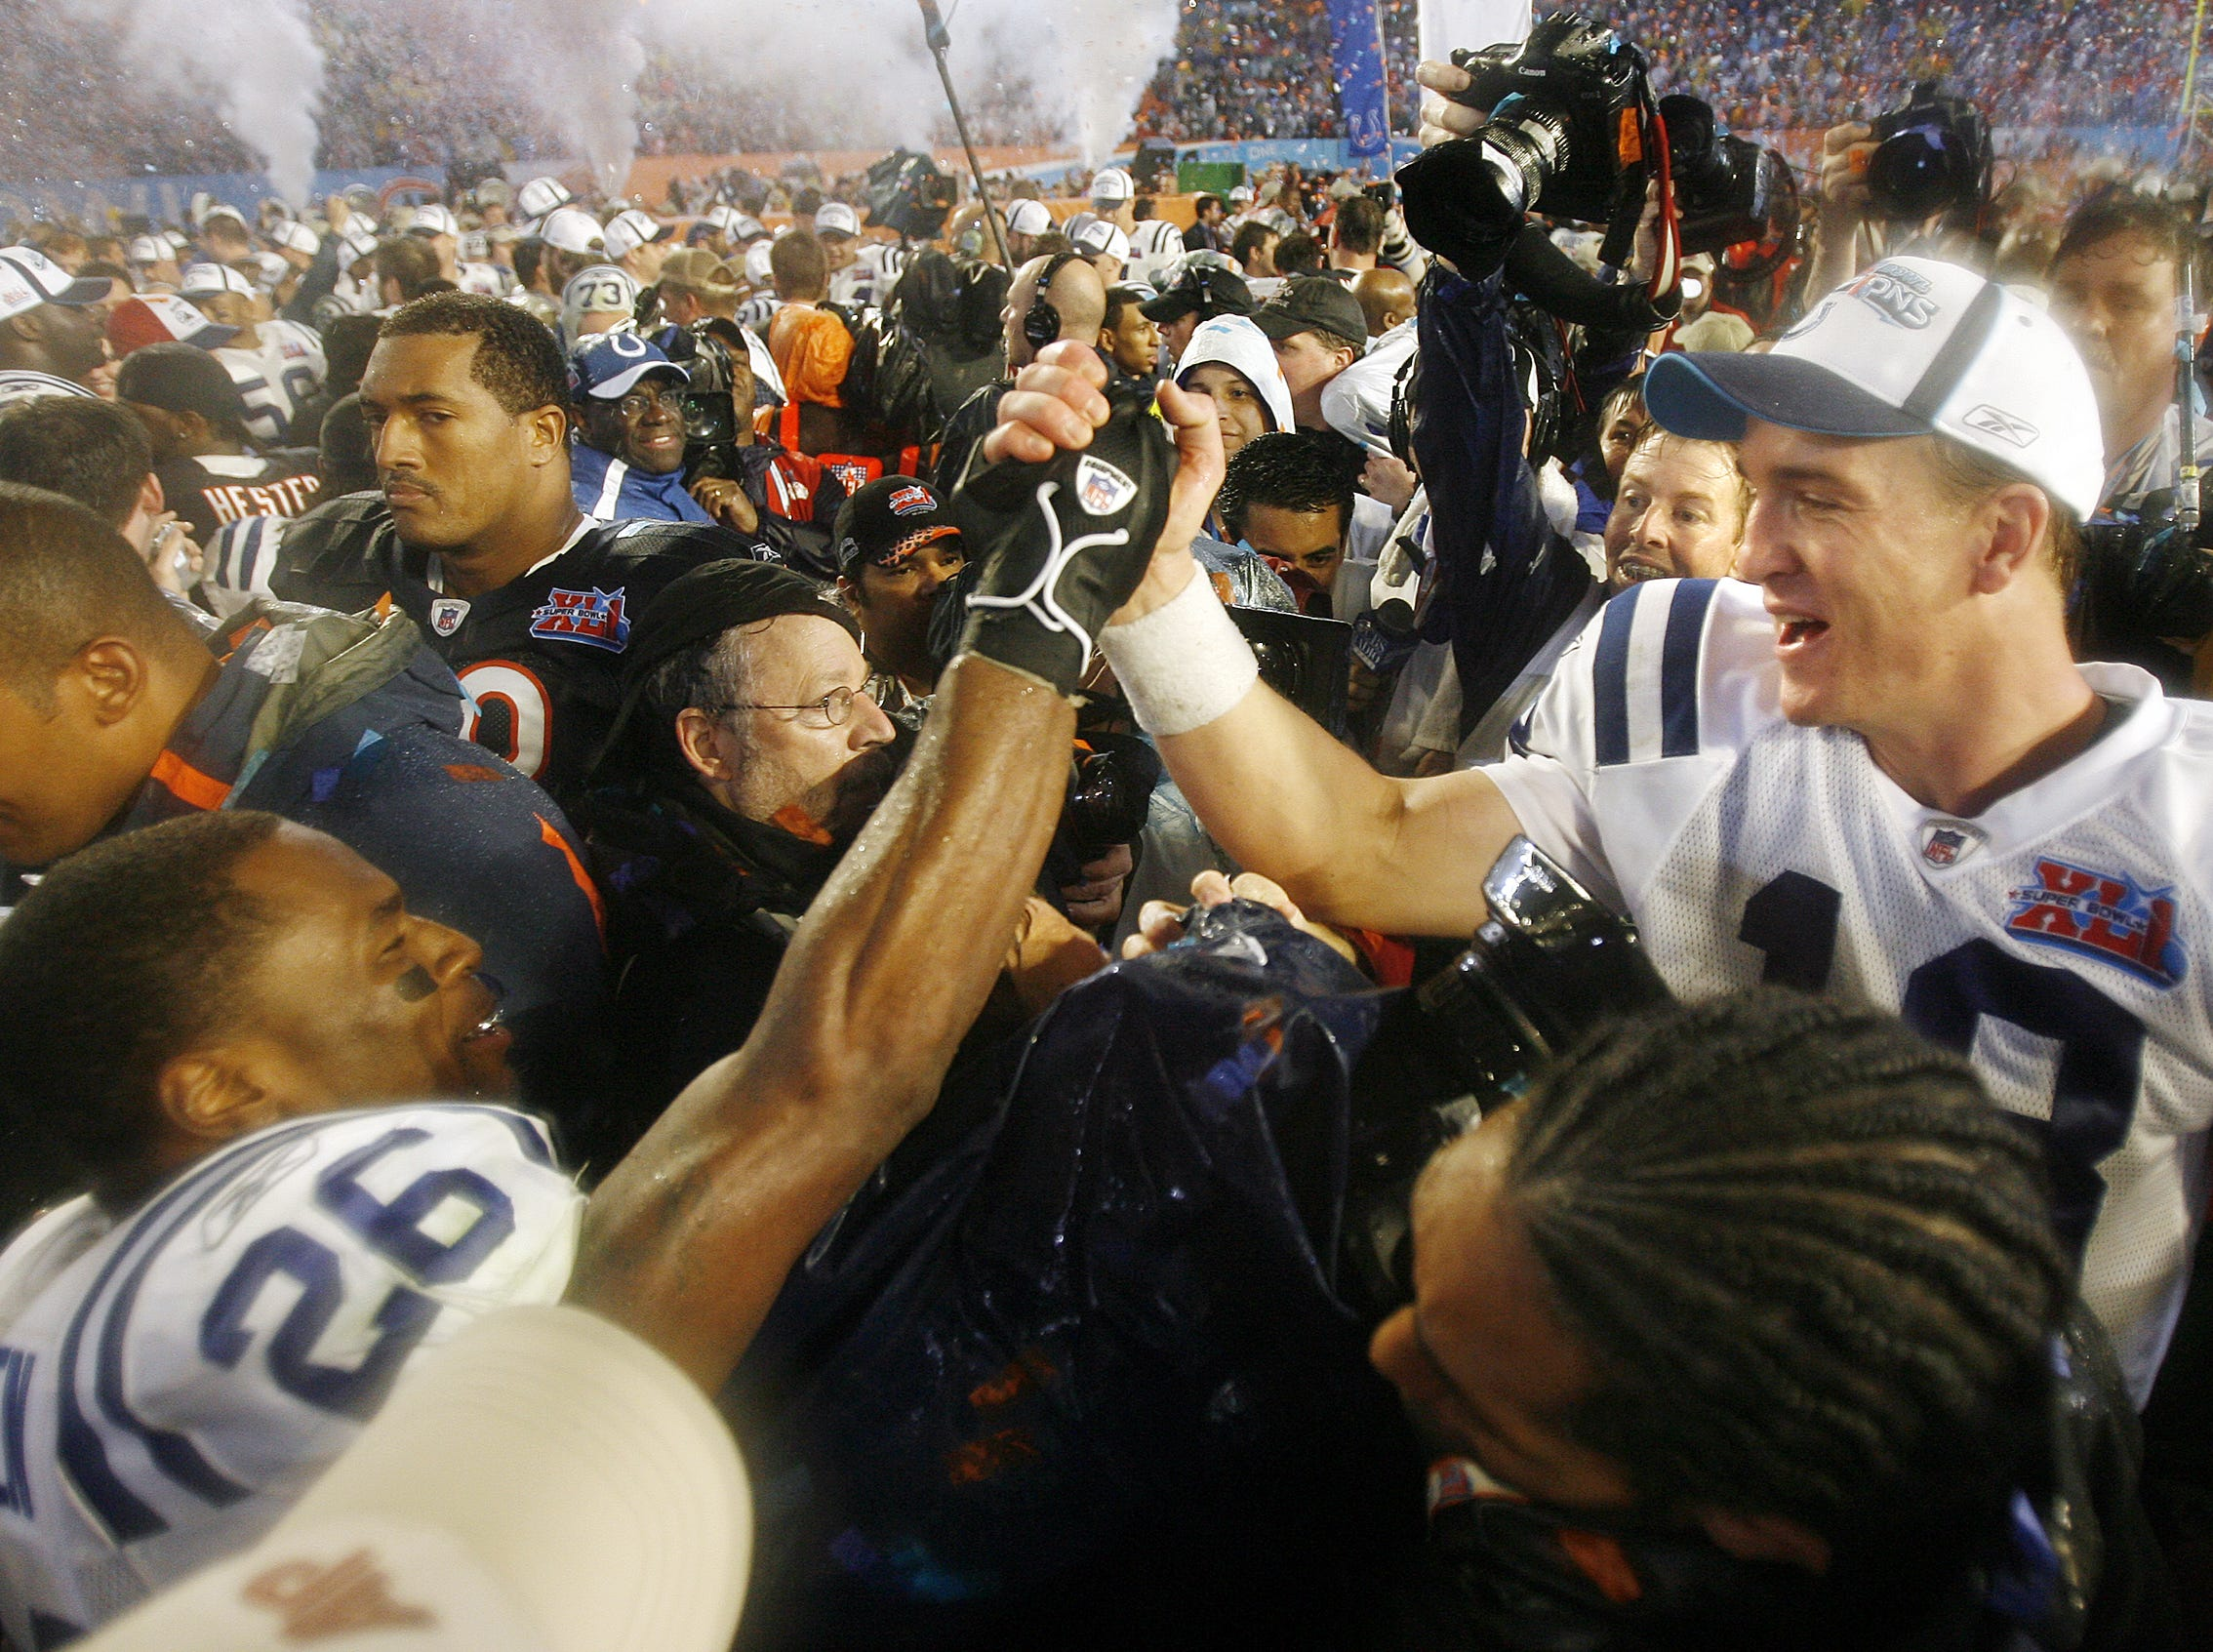 Indianapolis Colts Colts Peyton Manning, right, high fives Kelvin Hayden,left, following the Colts 29-17 win in Super Bowl XLI on Feb 4, 2007.